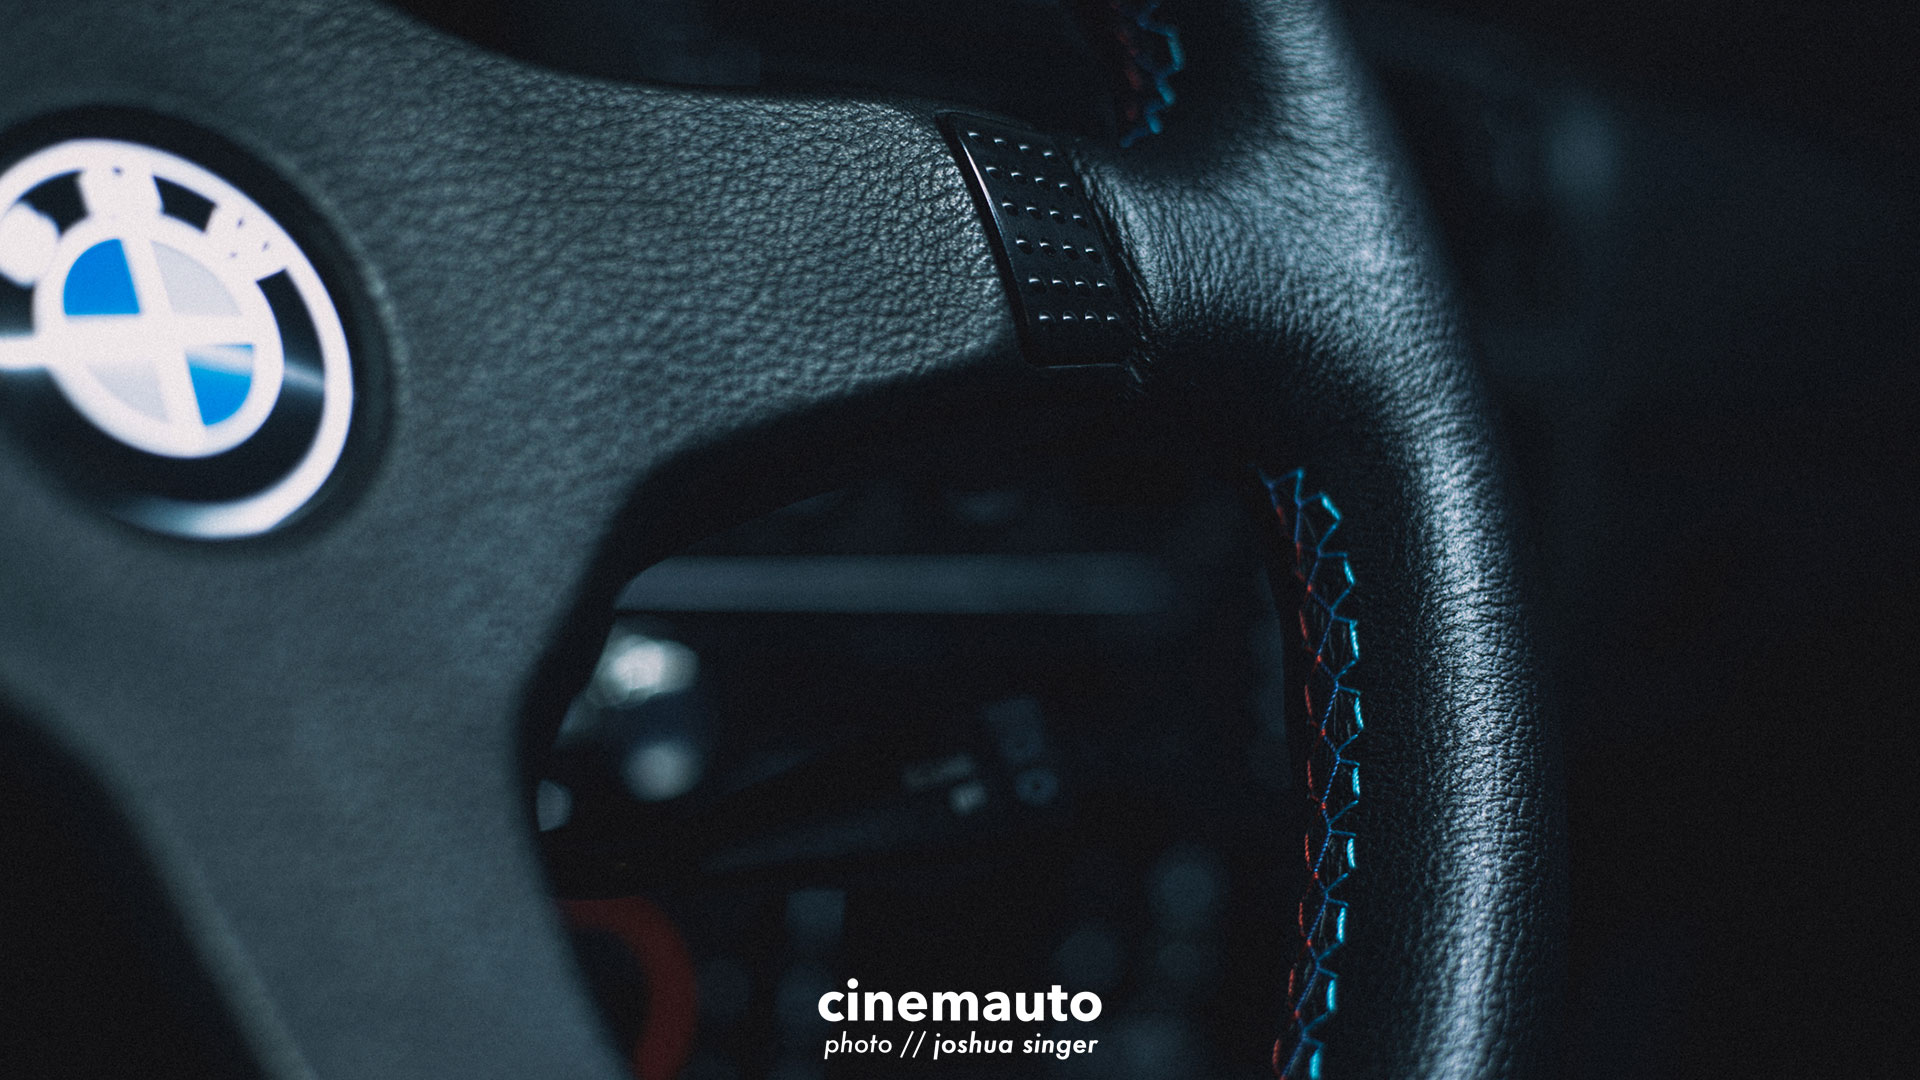 cinemauto-wichita-automotive-videography-midwest-car-cinematography-kk9.jpg